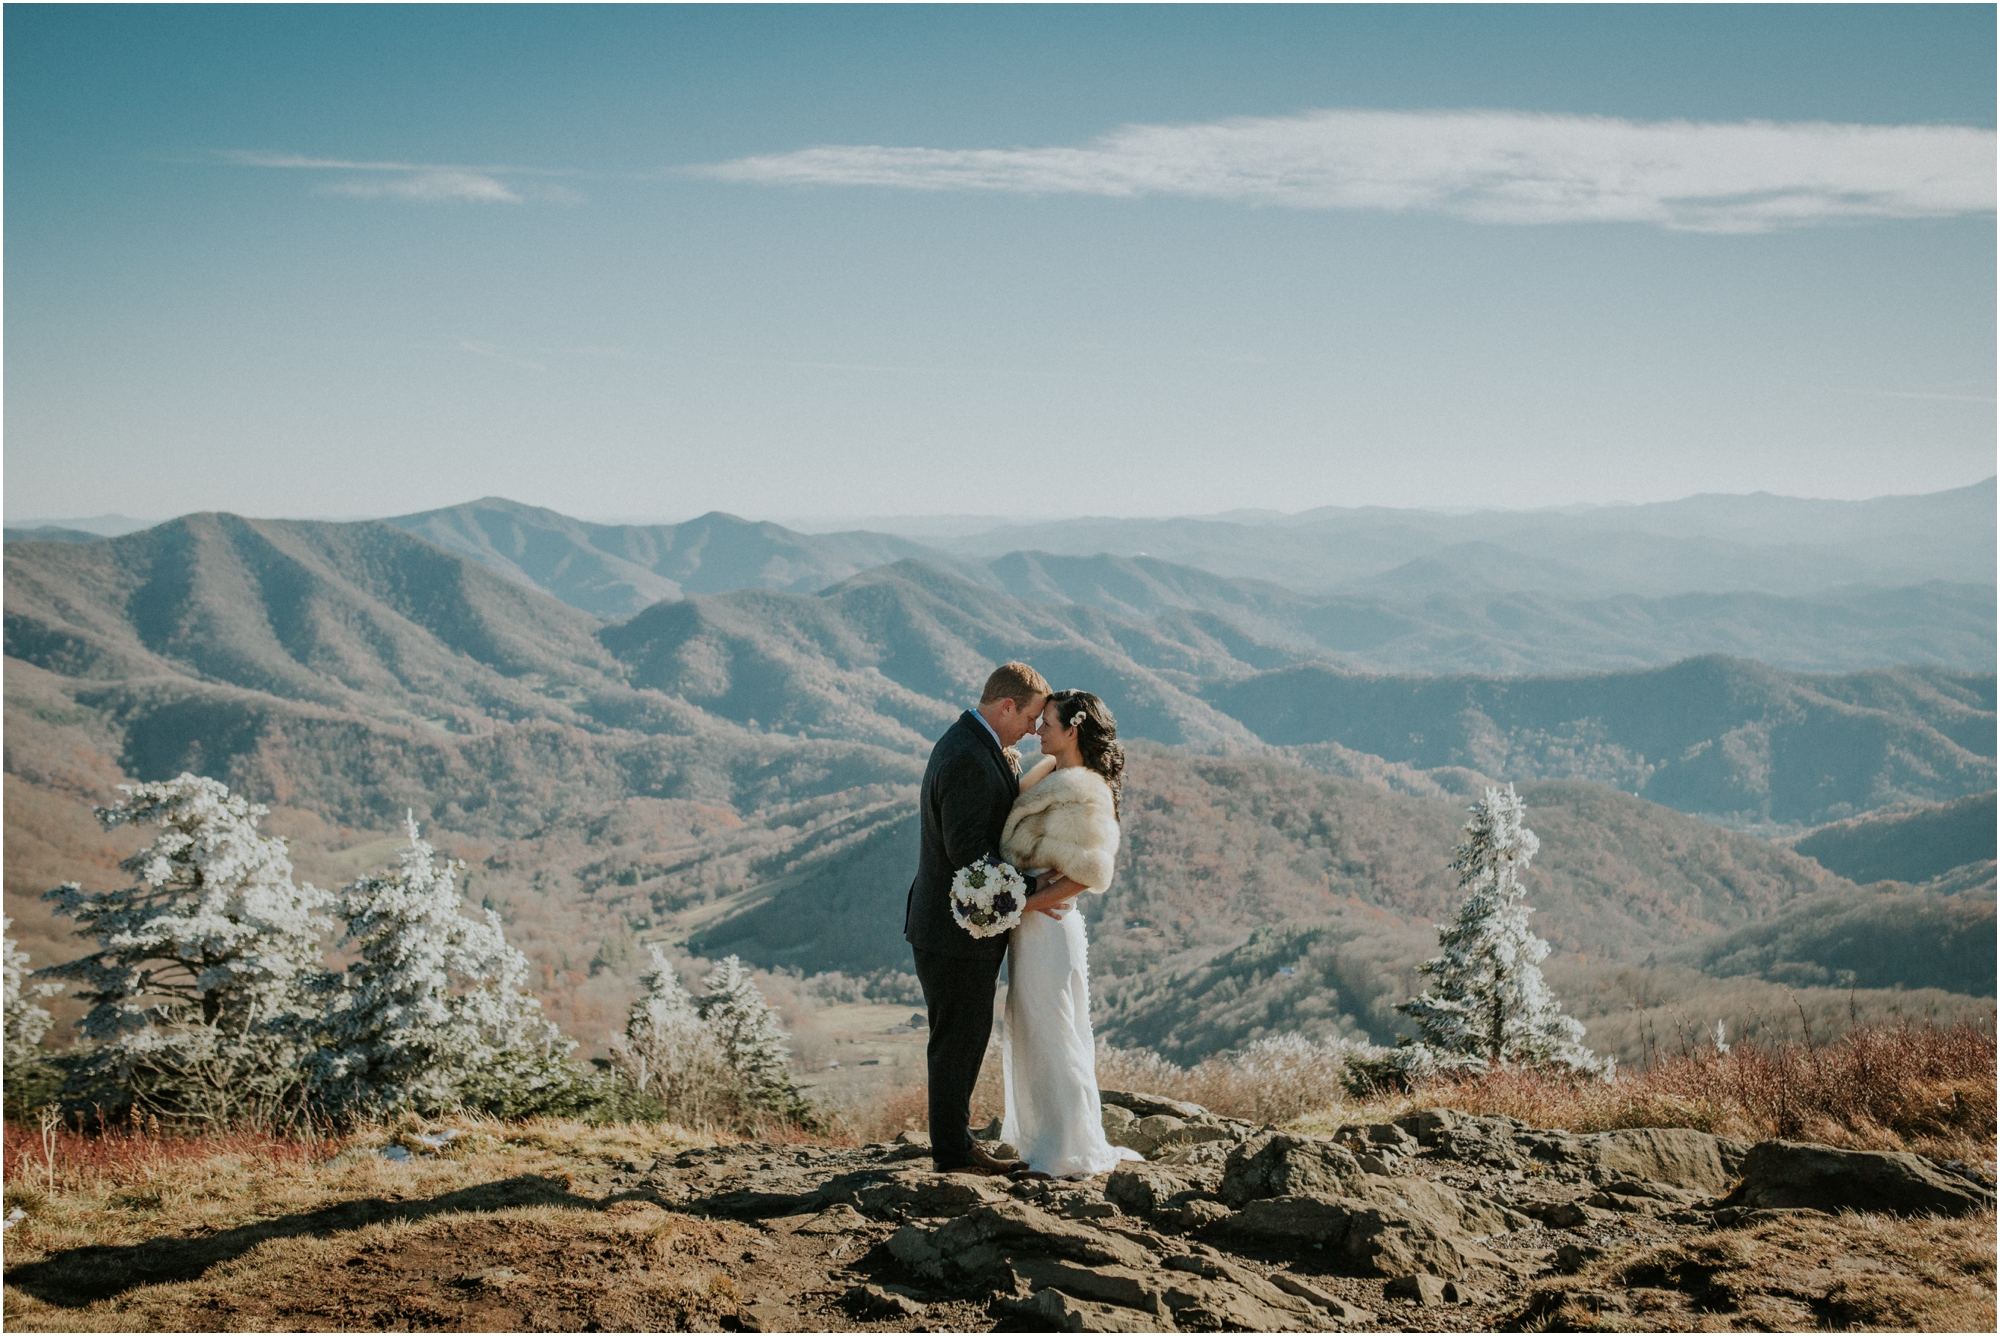 roan-mountain-tn-tennessee-north-carolina-intimate-wedding-elopement-adventurous-snowy-winter-mountaintop-katy-sergent-photographer_0029.jpg